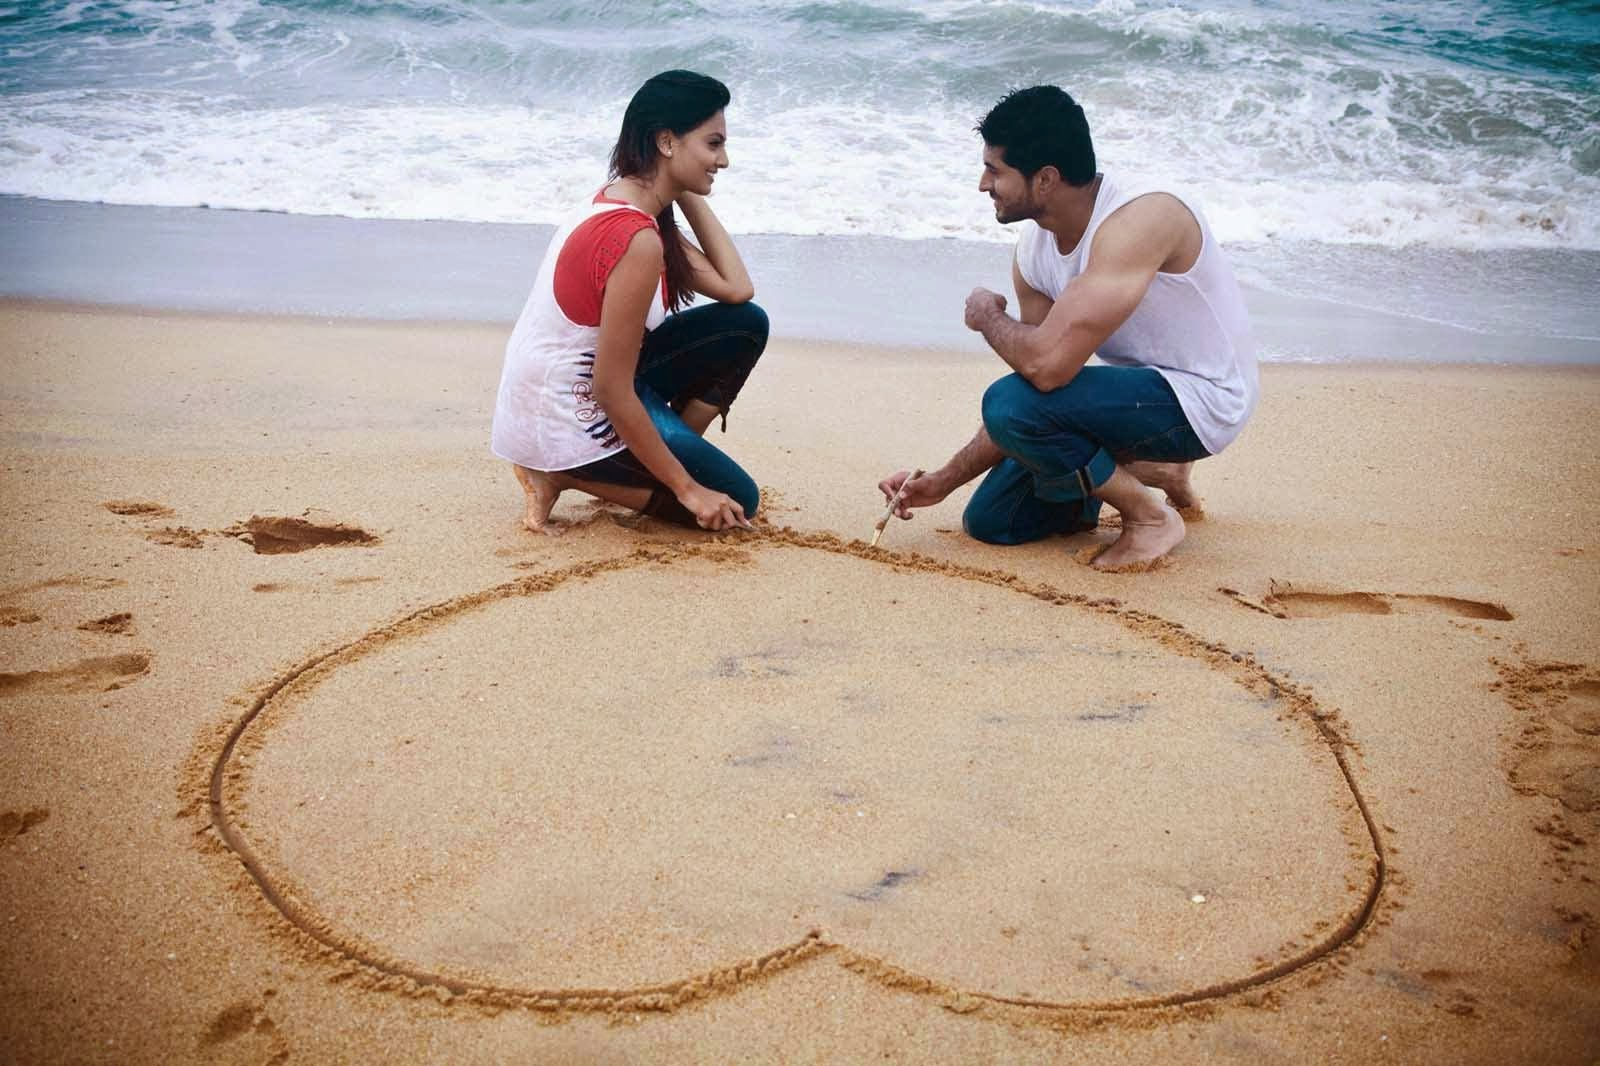 Know lover wish, How to know partner love me or not, how to know about partner ideas